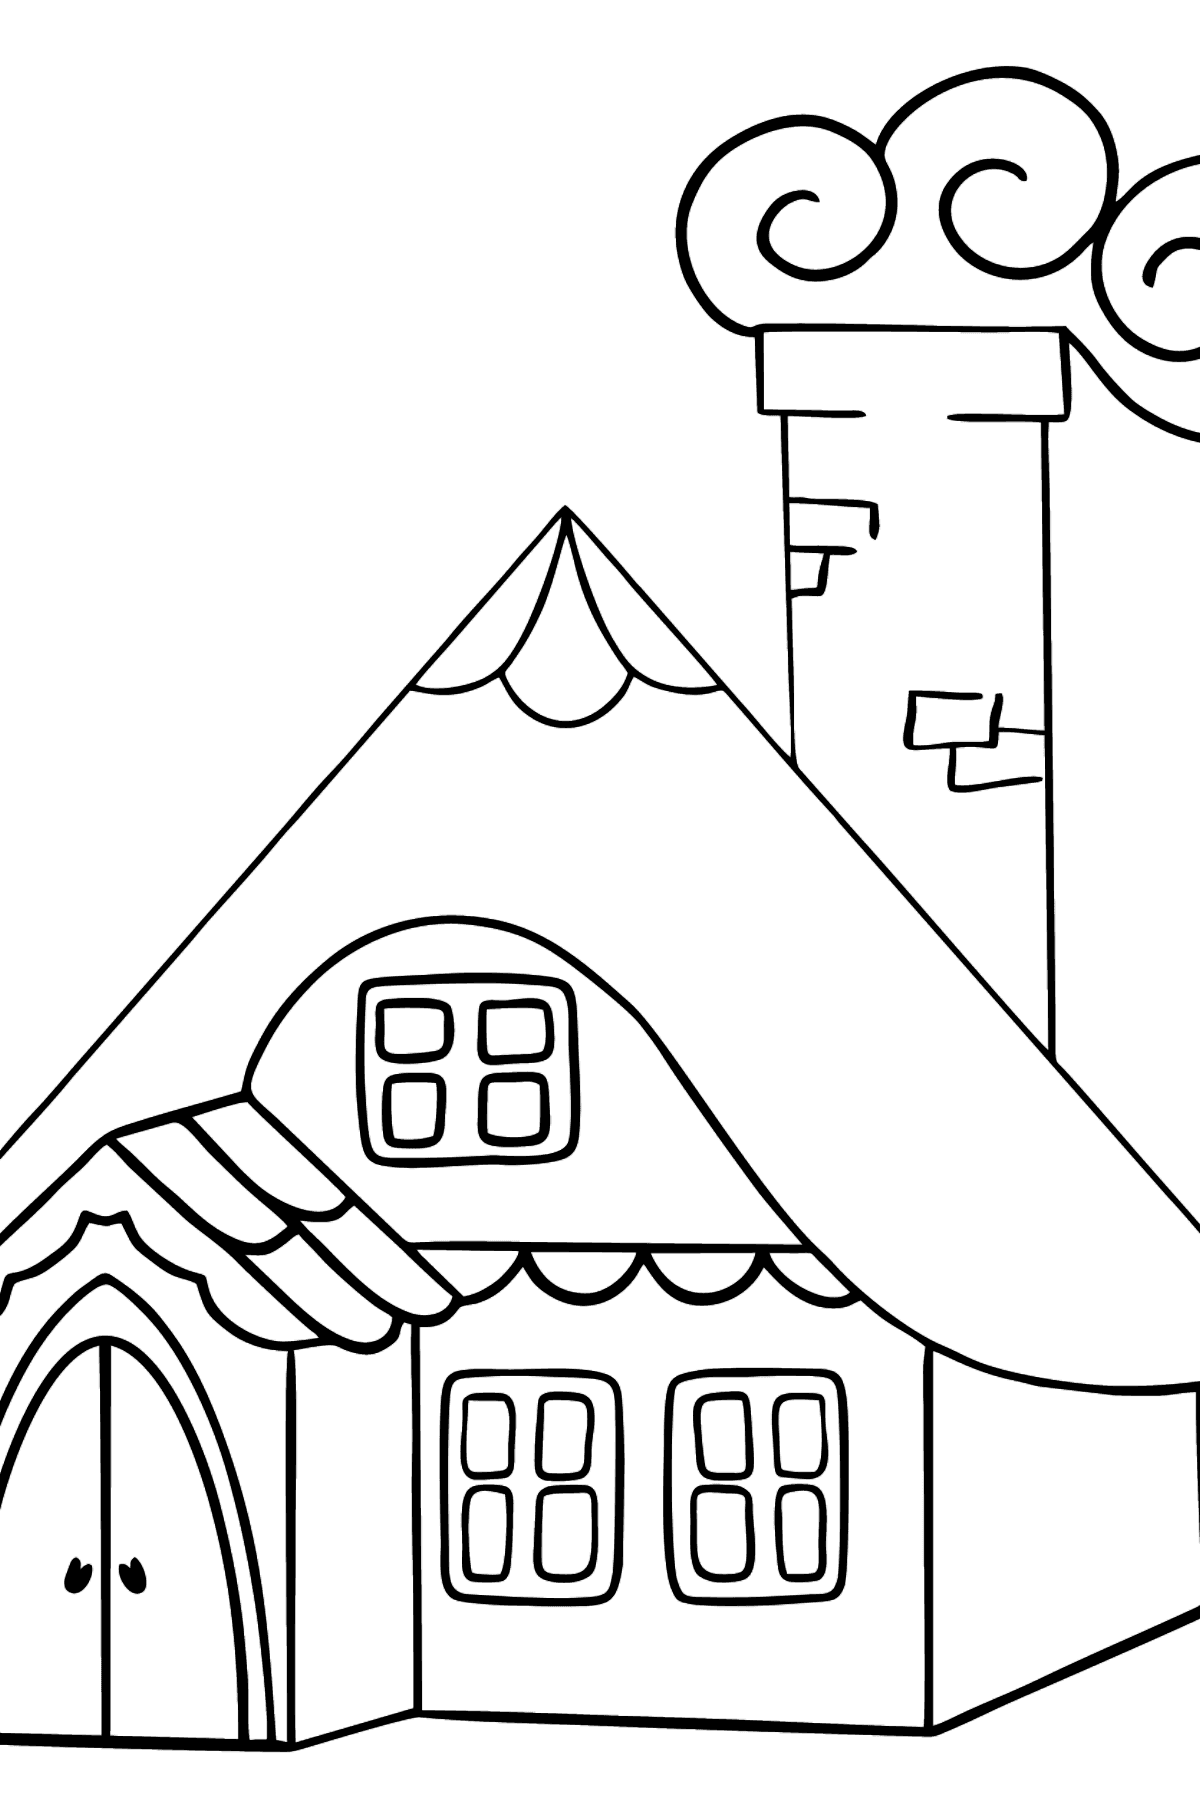 Simple Coloring Page - A Wonderful House - Coloring Pages for Kids